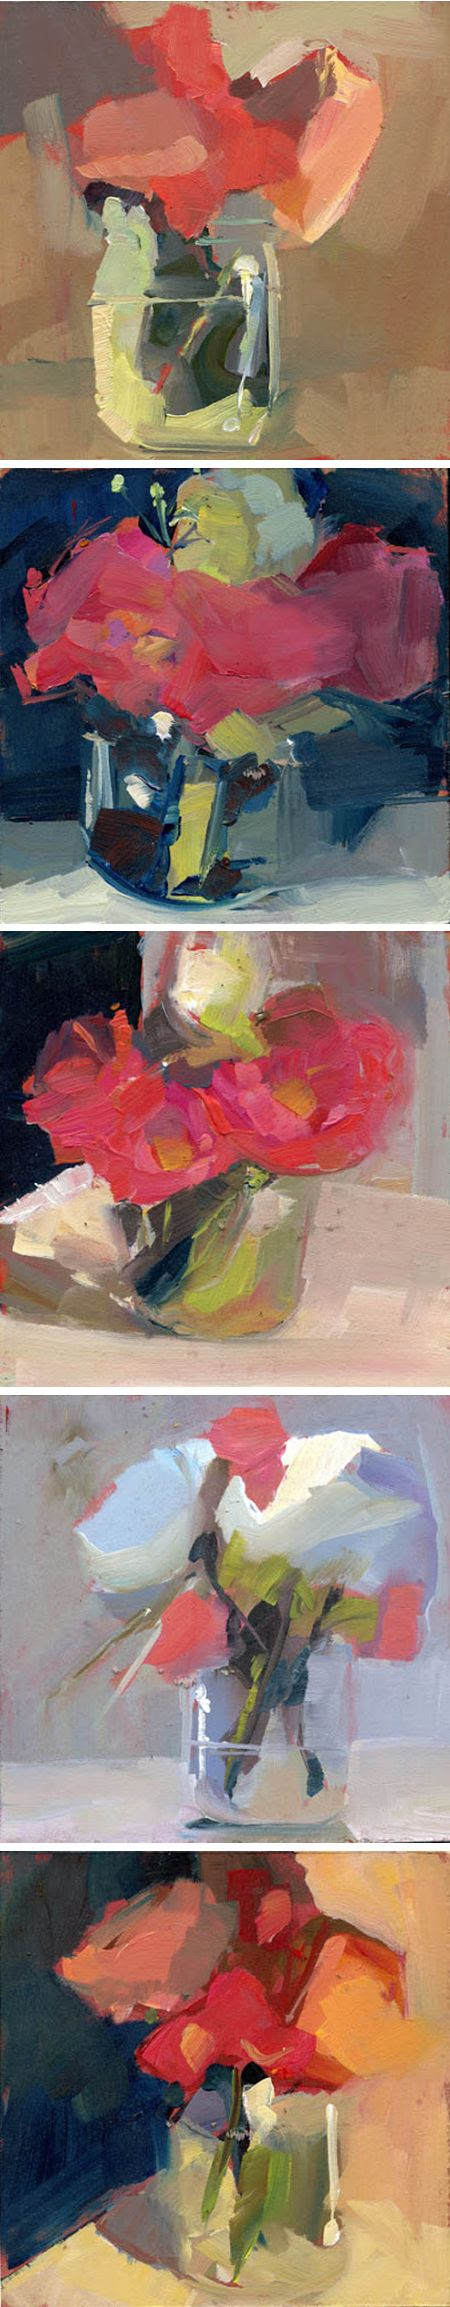 one-a-day paintings by lisa daria <3